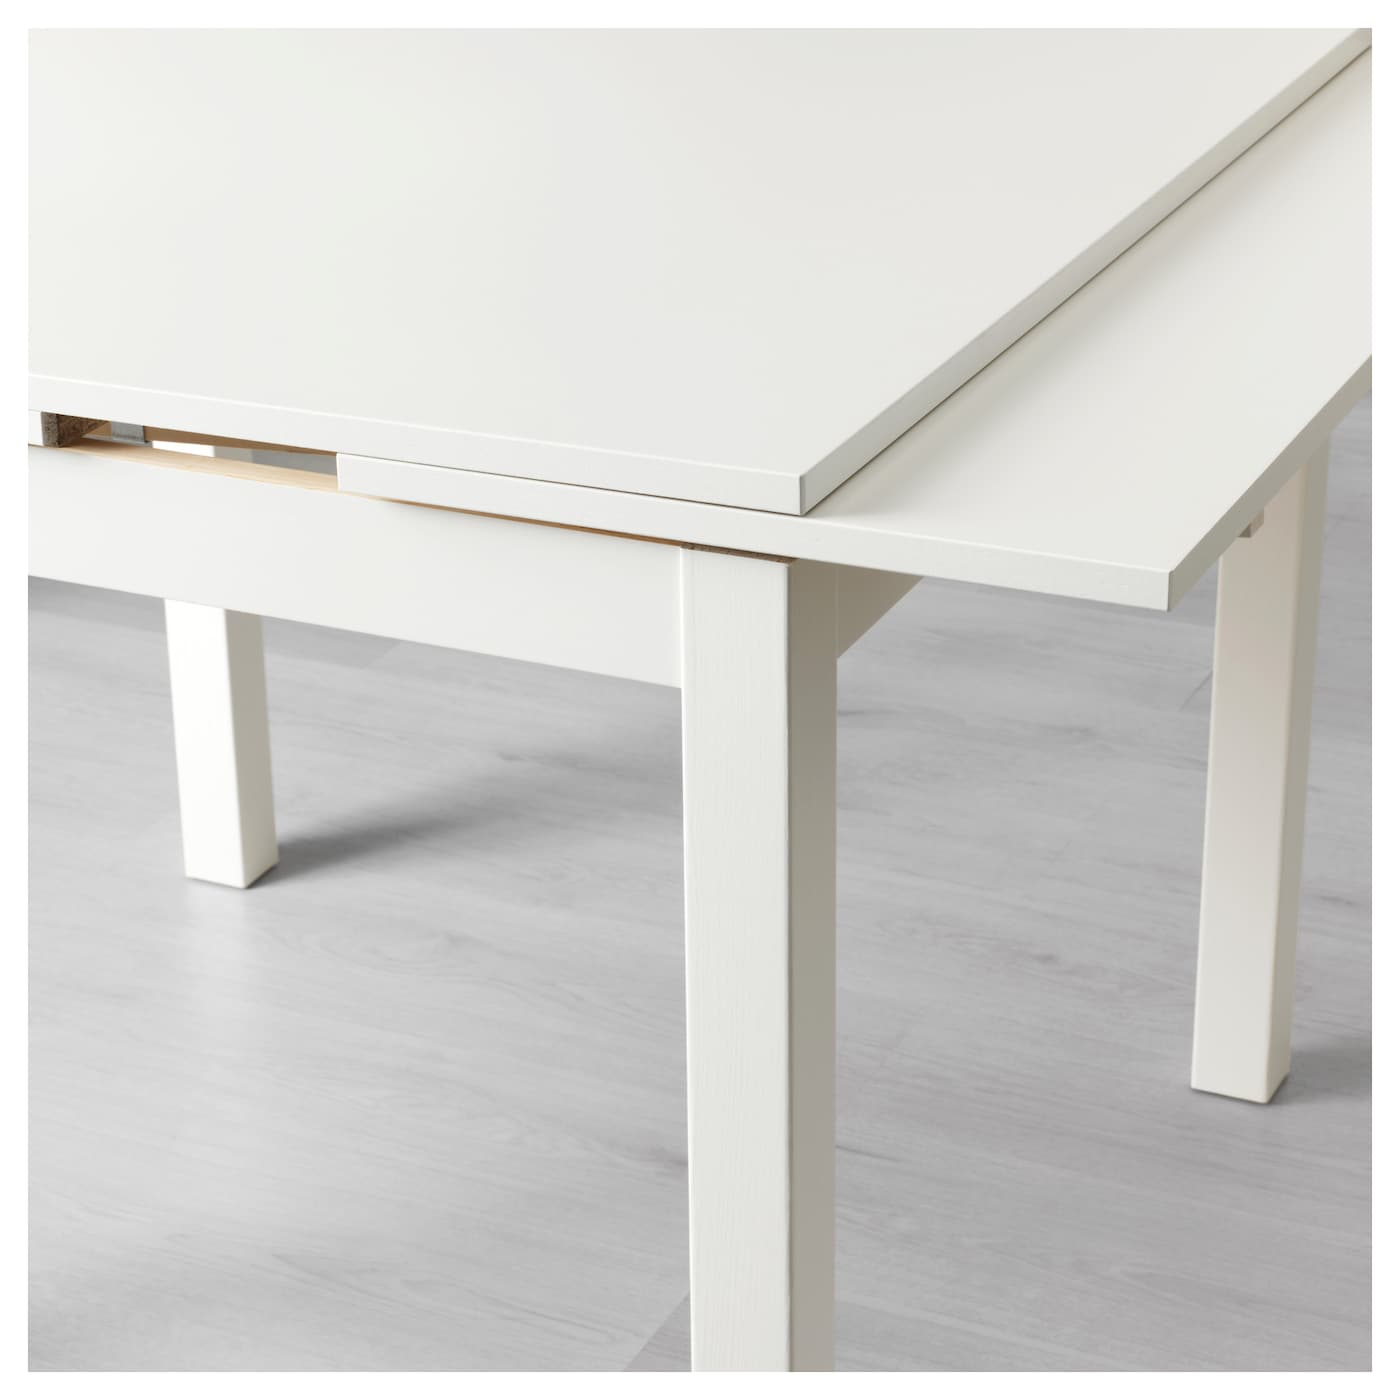 Bjursta extendable table white 90 129 168x90 cm ikea for Table extensible quadrato